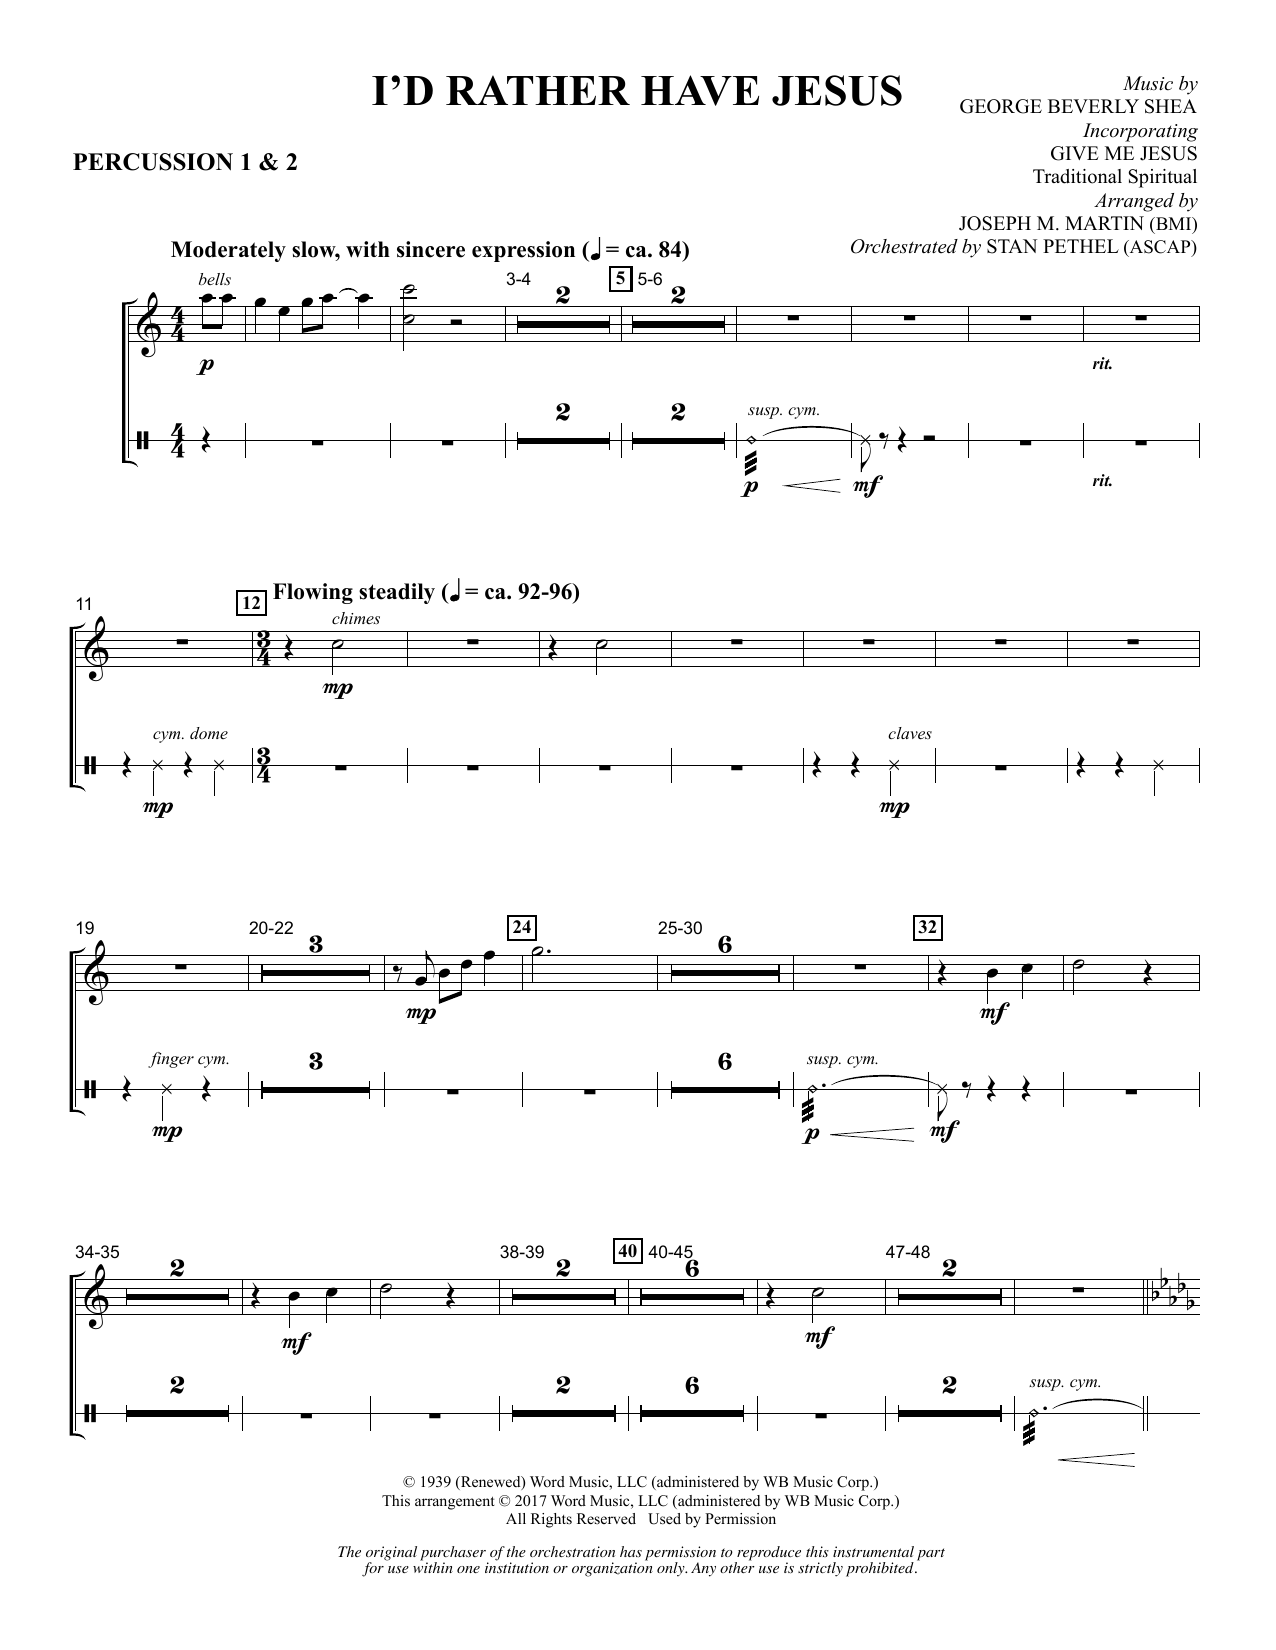 I'd Rather Have Jesus - Percussion 1 & 2 Sheet Music